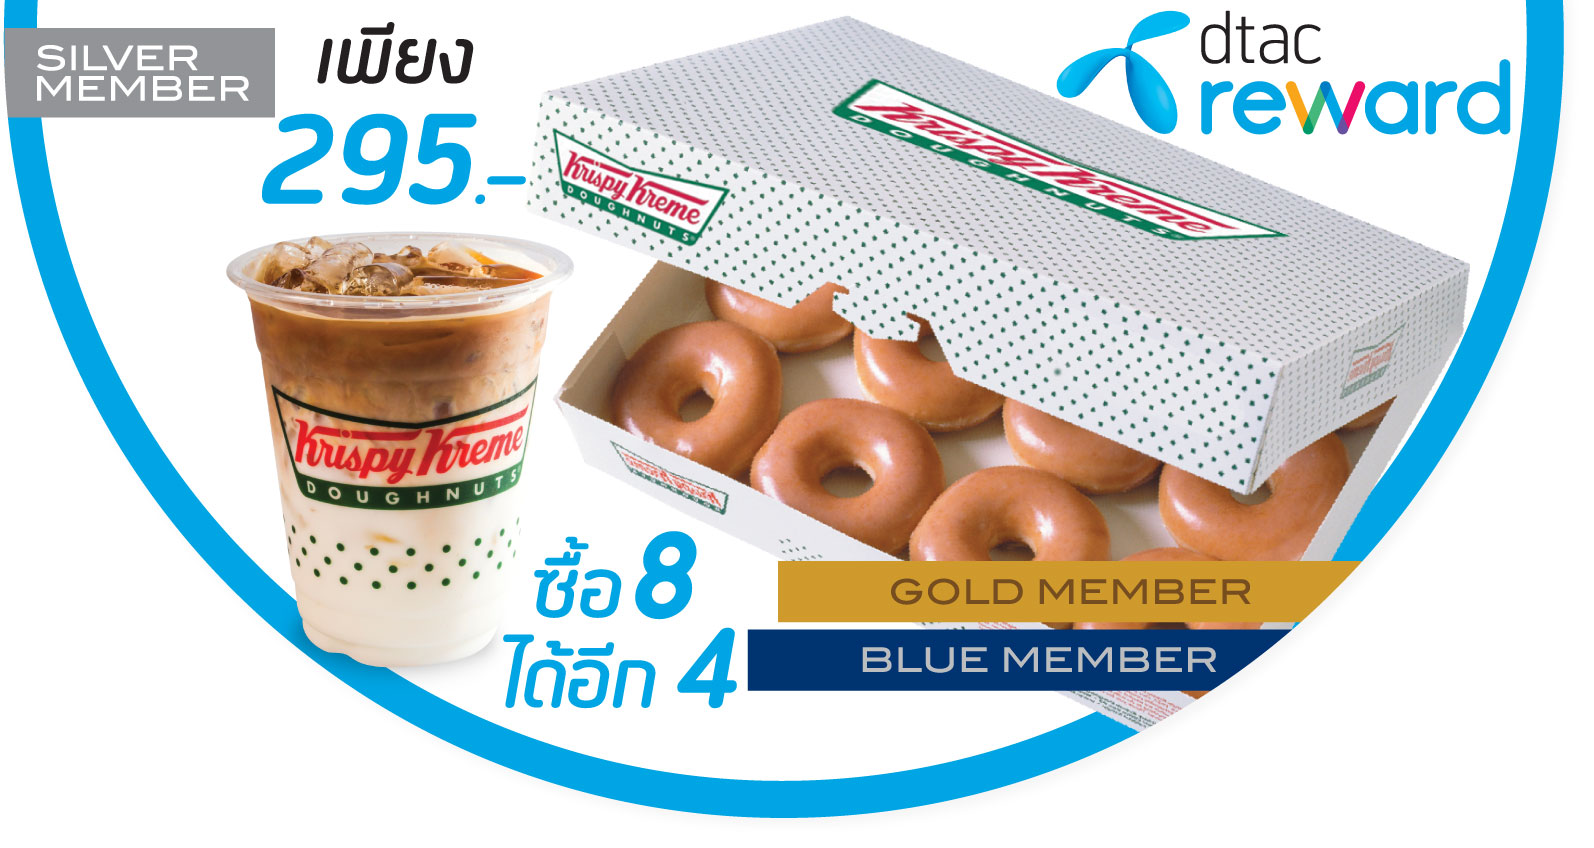 krispykreme_website_03.04.2019_01